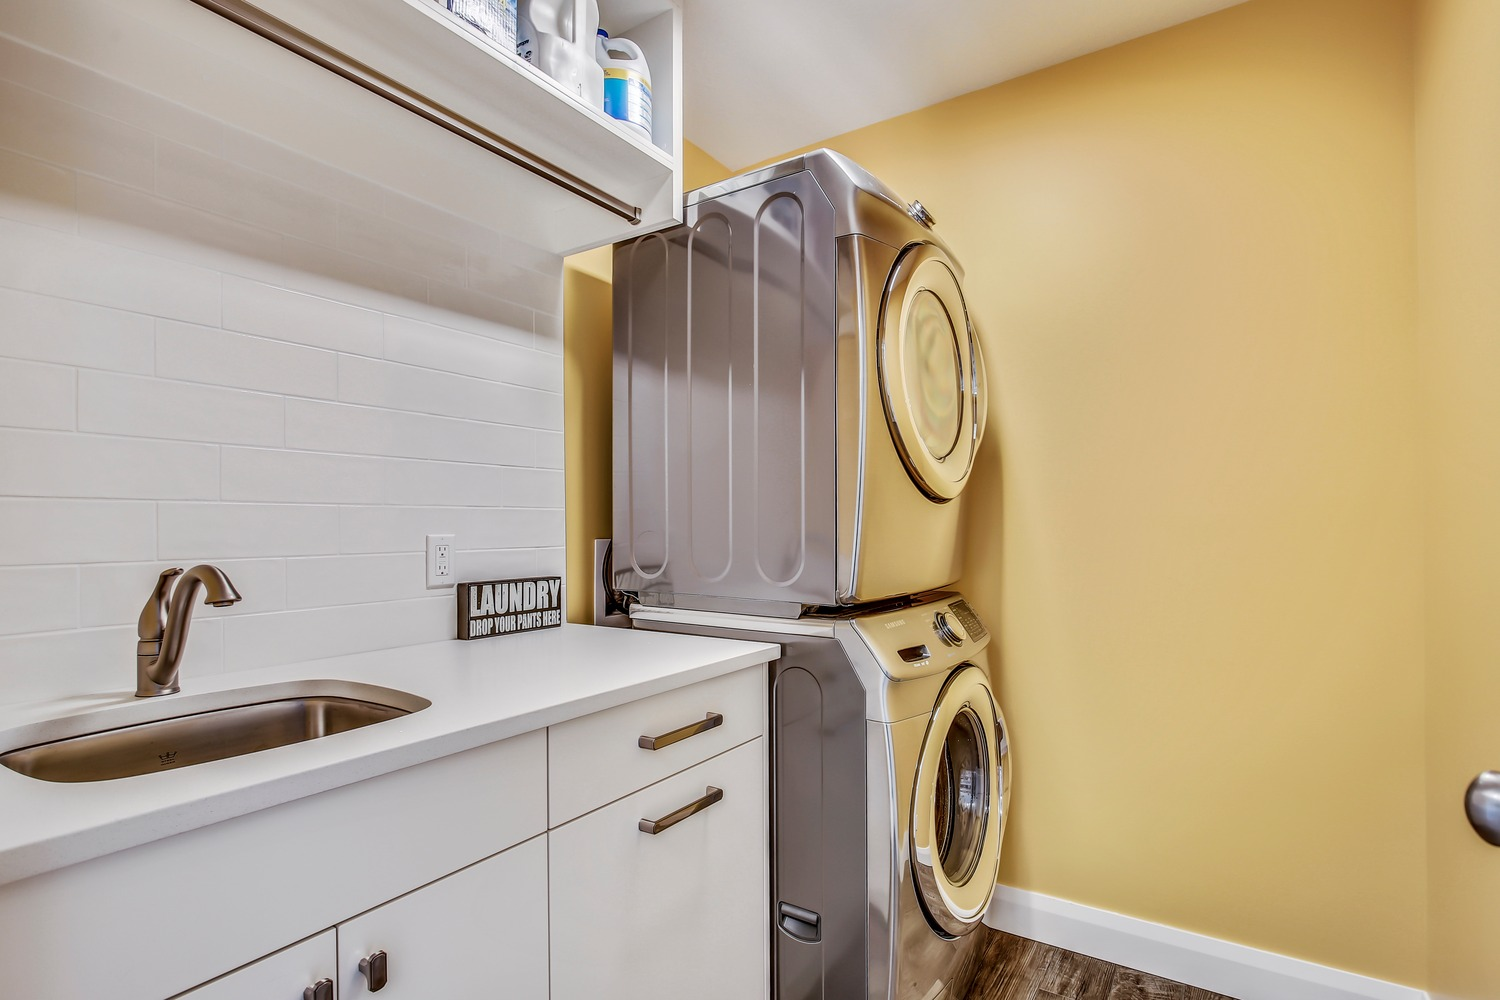 After - Laundry room